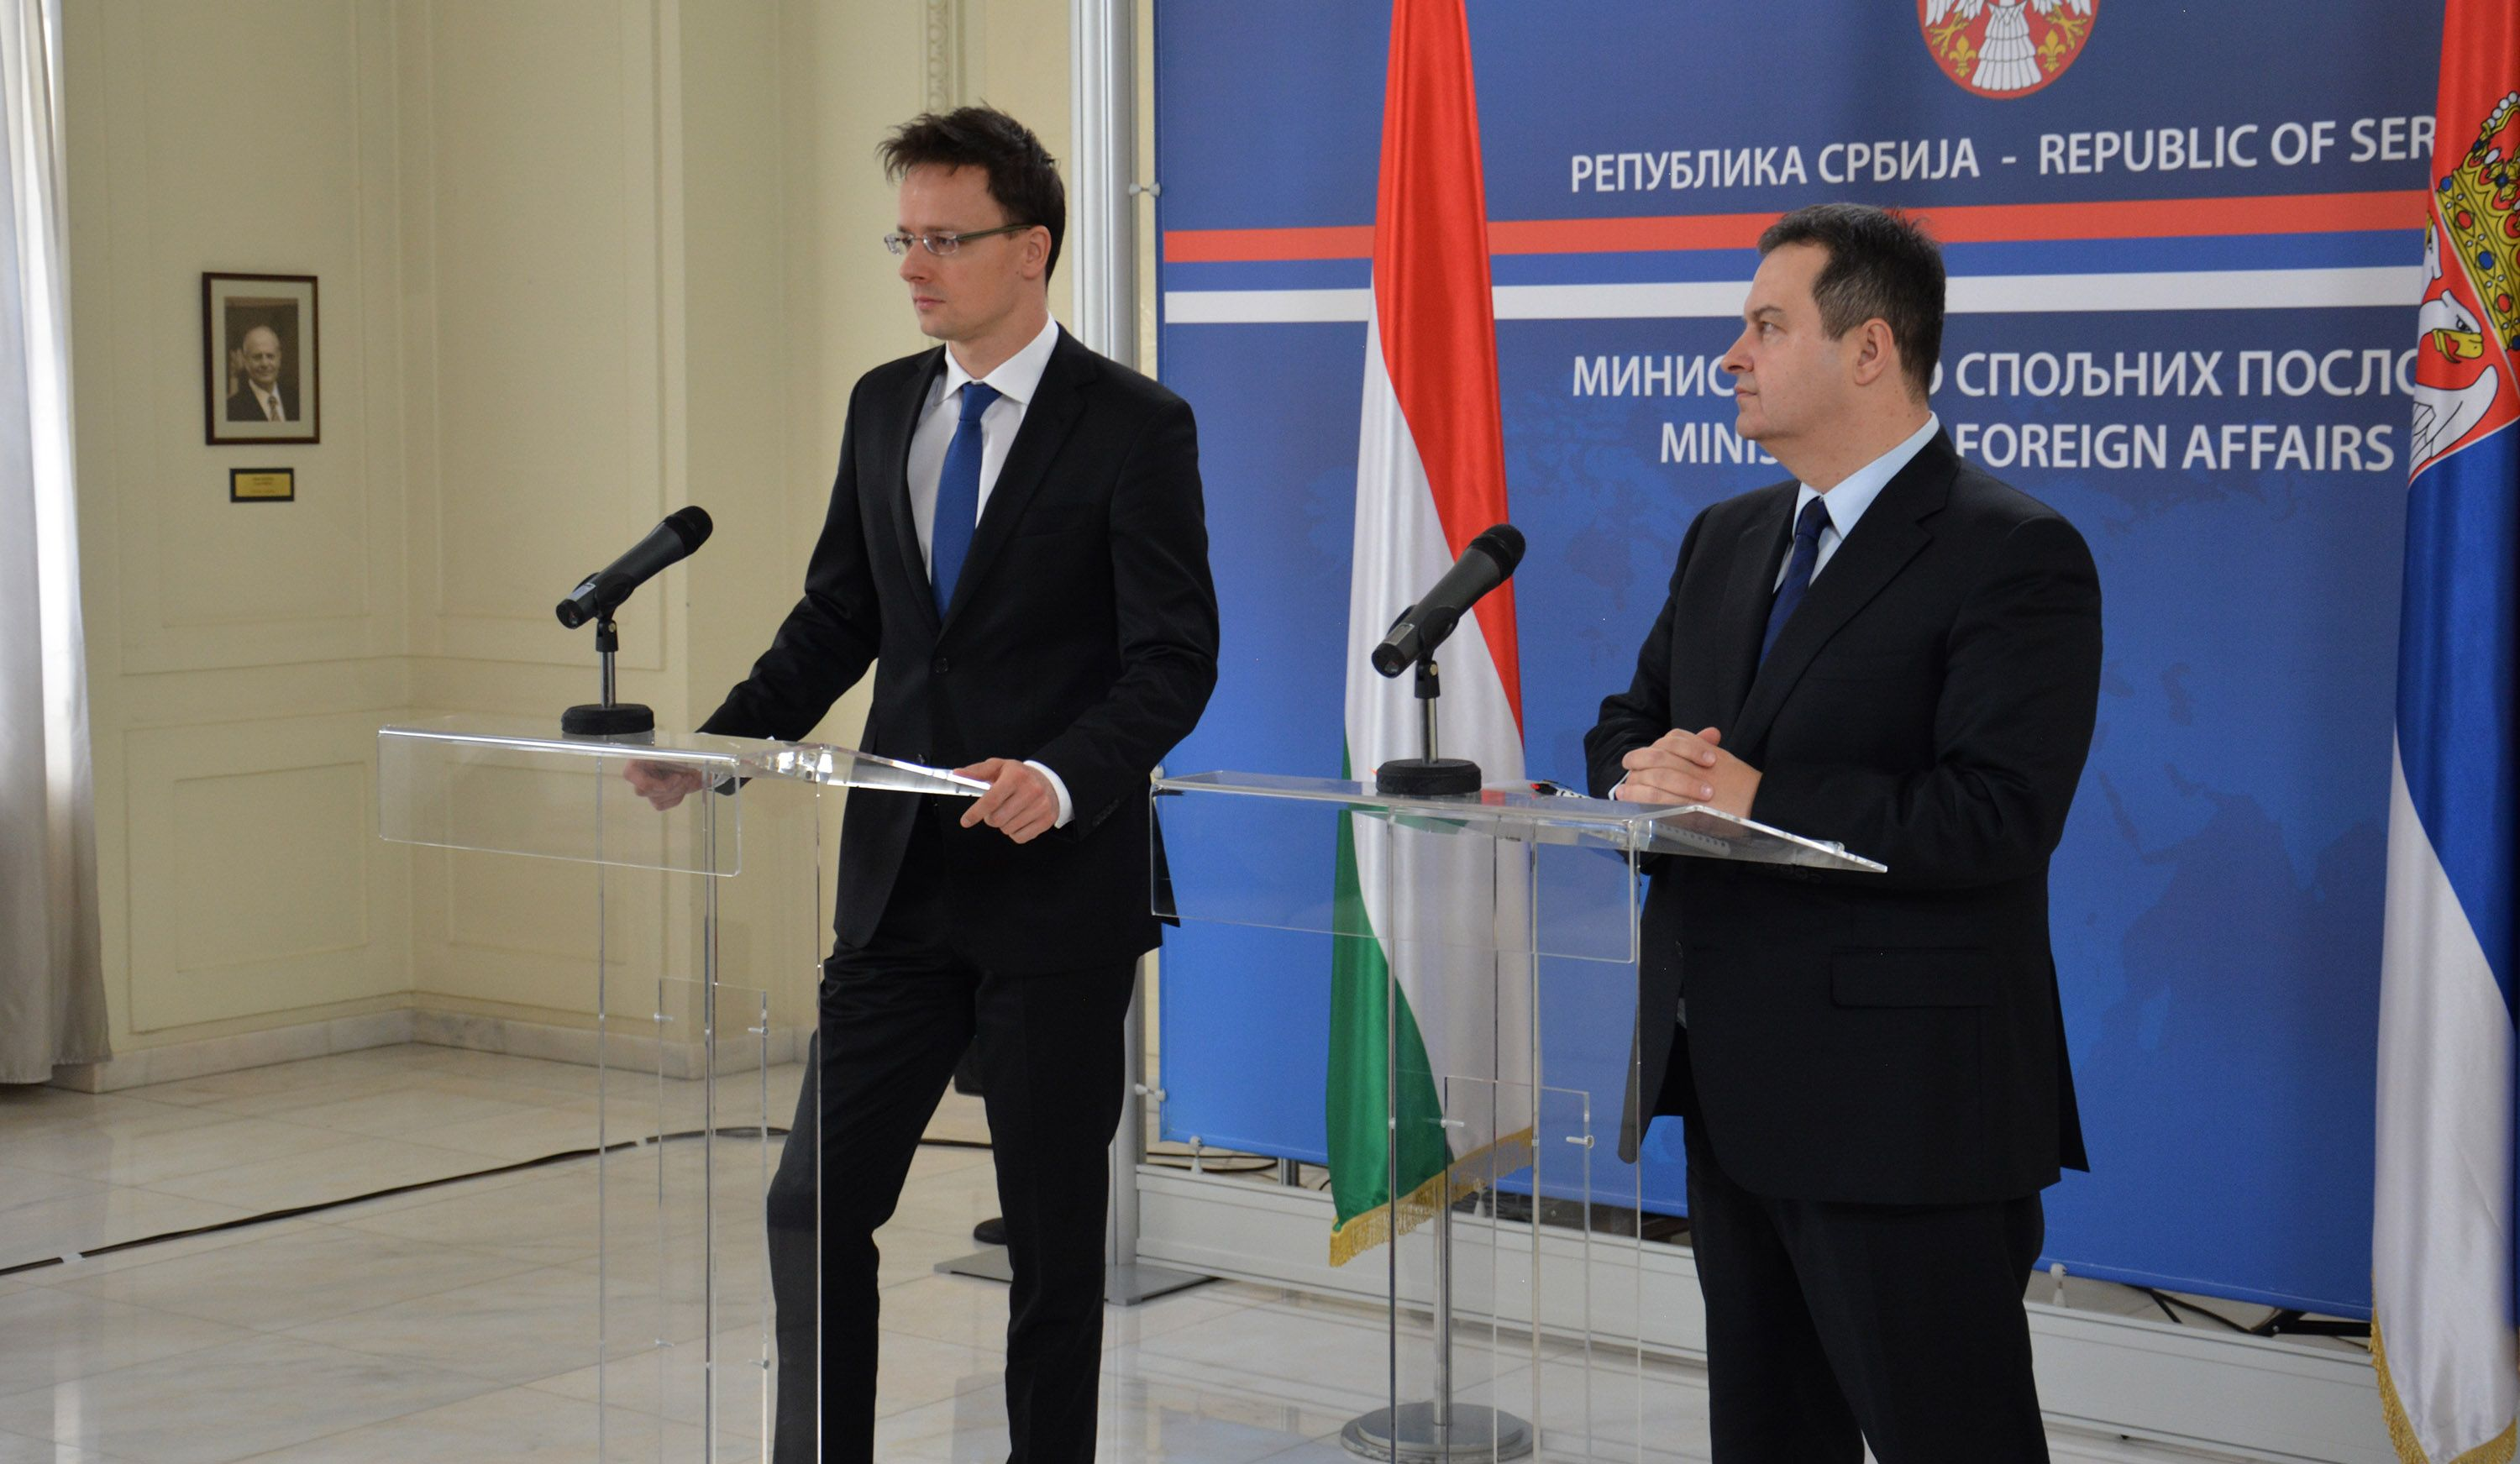 Hungary supports Serbia in its row with Croatia